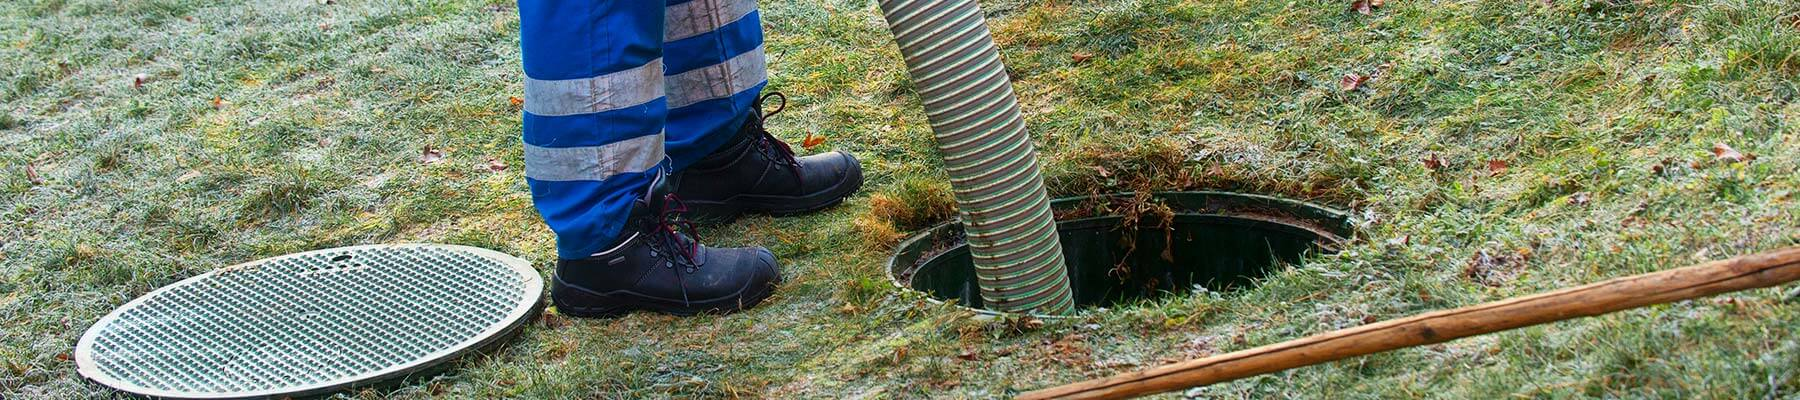 Septic Tanks Header Image